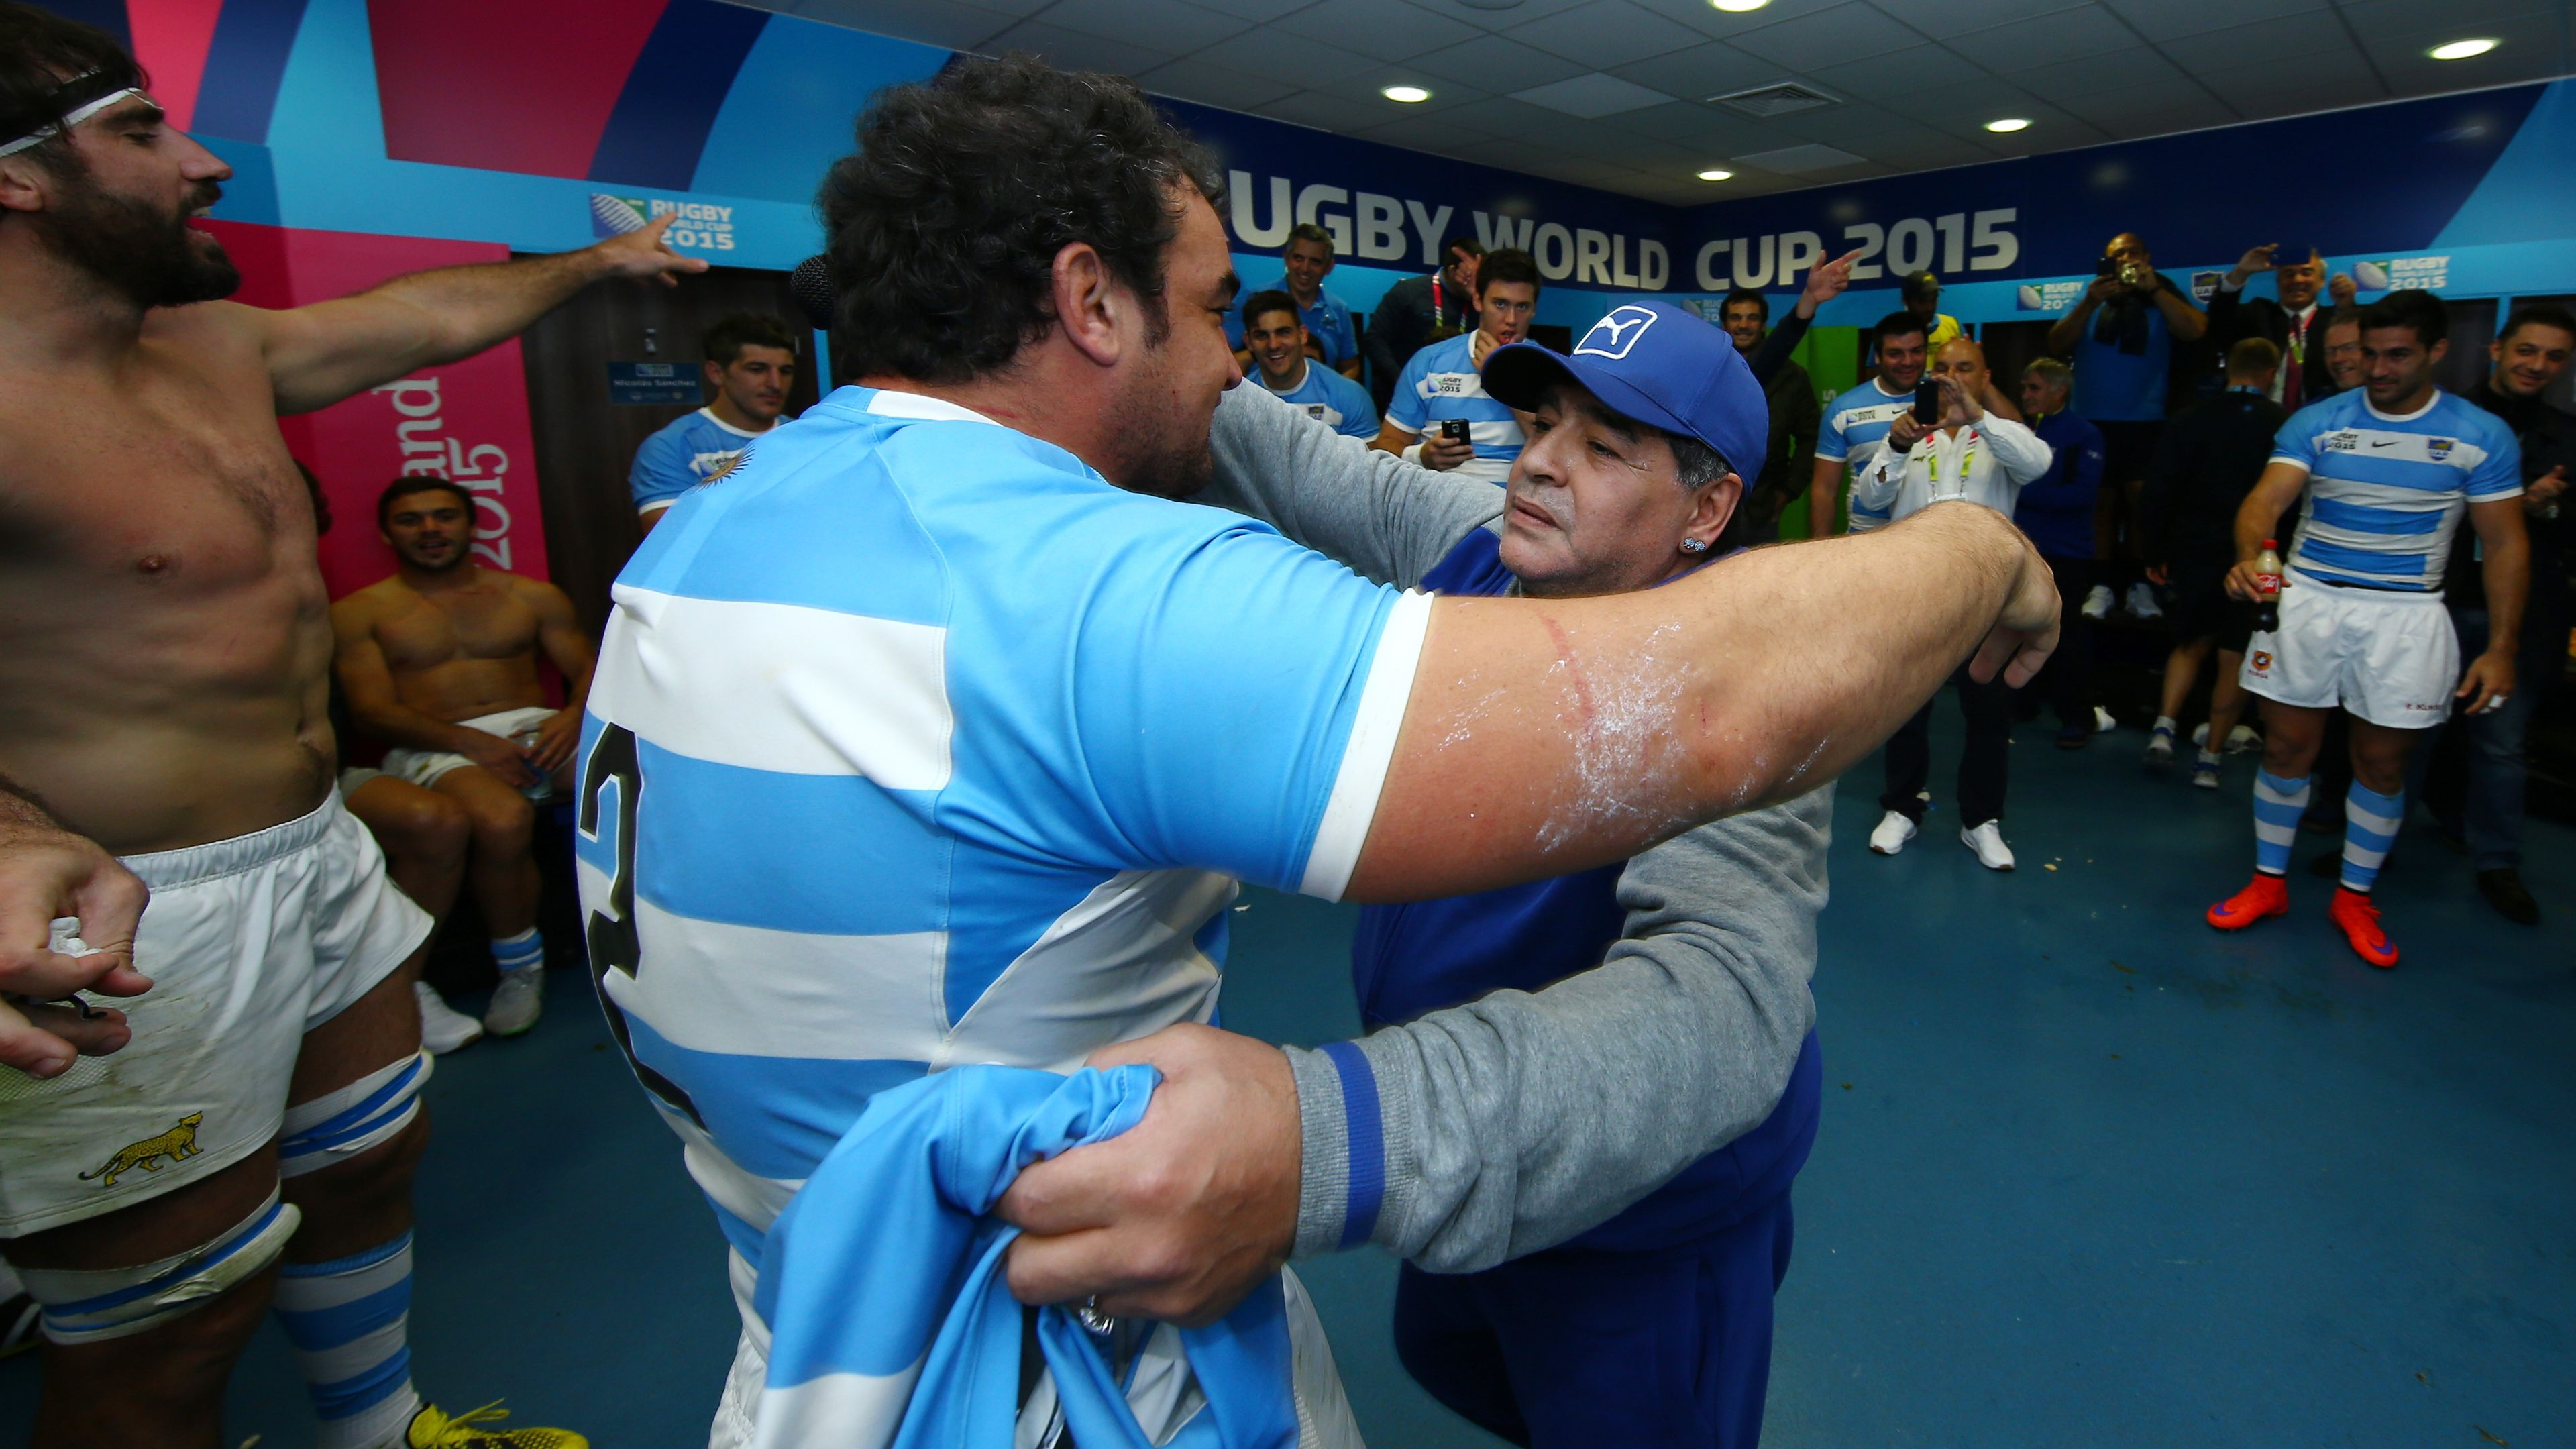 Diego Maradona embraces Argentina captain Agustin Creevy at the 2015 Rugby World Cup.